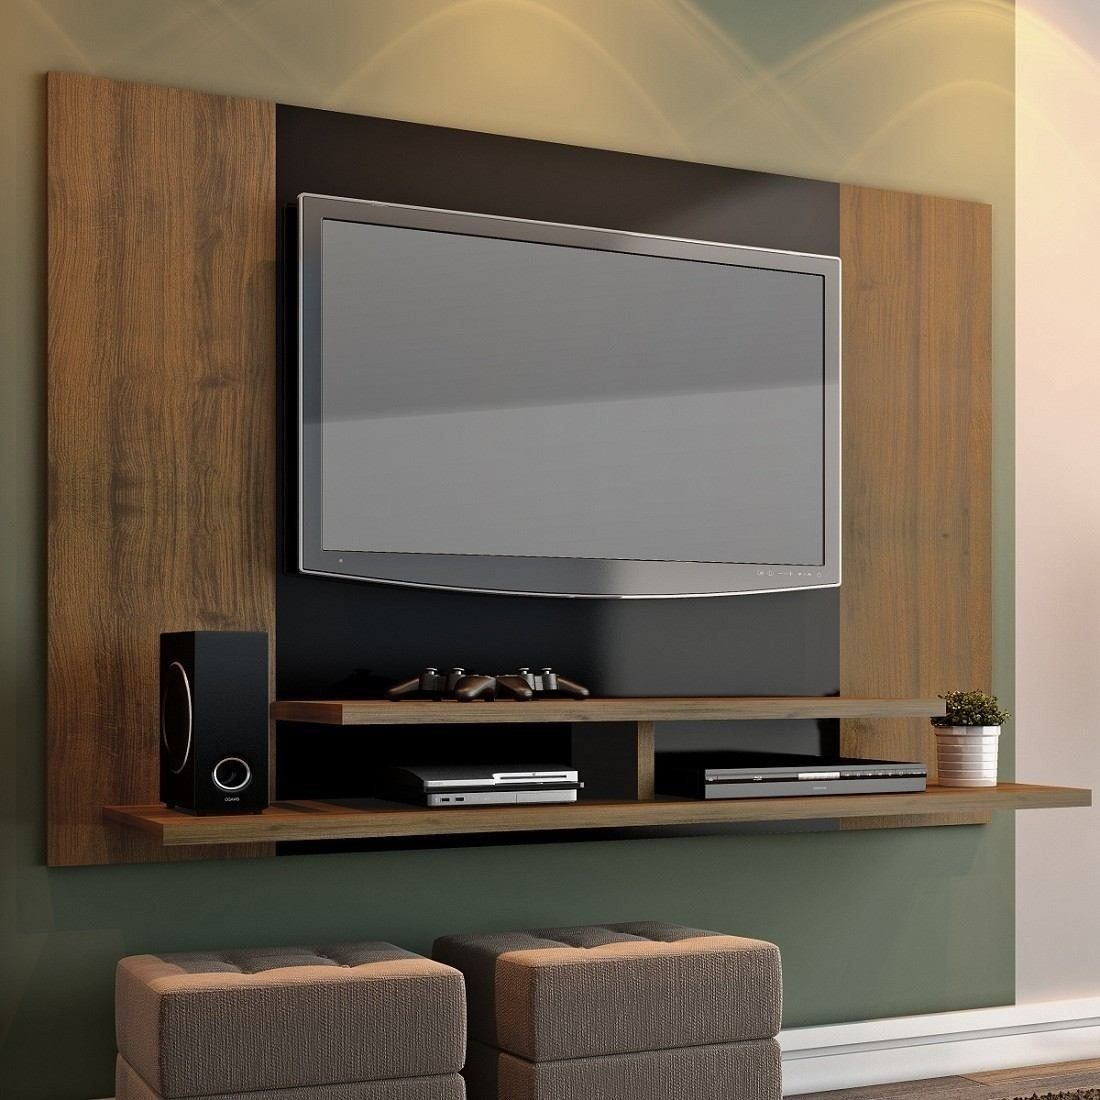 TVs Pin by Gianella Cabrera on Ideas